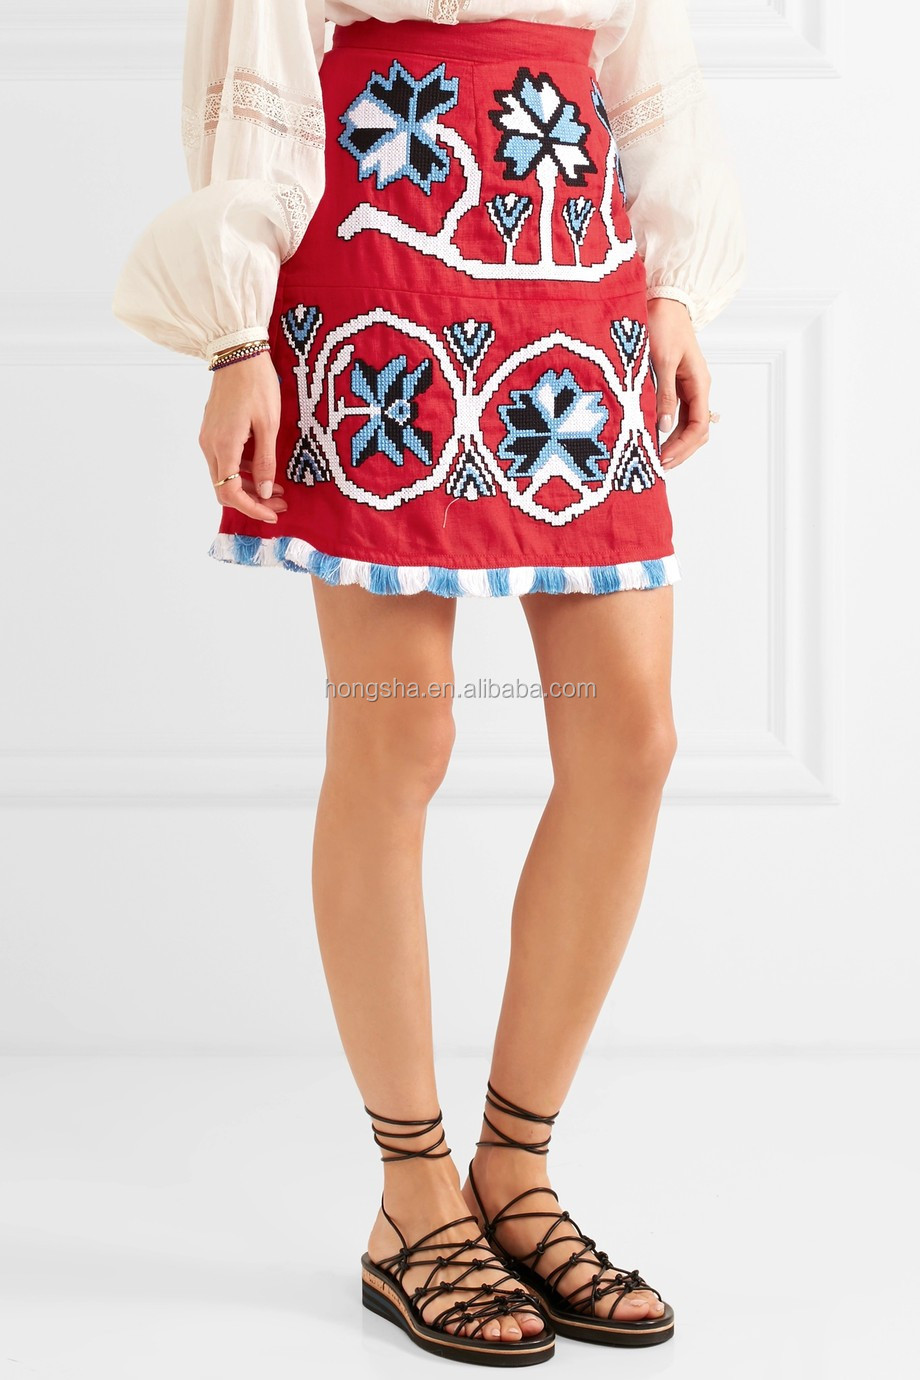 Boho Clothing Vyshyvanka Floral Motif Mexican Embroidered Linen Mini Short Skirs No Underwear HSD5705